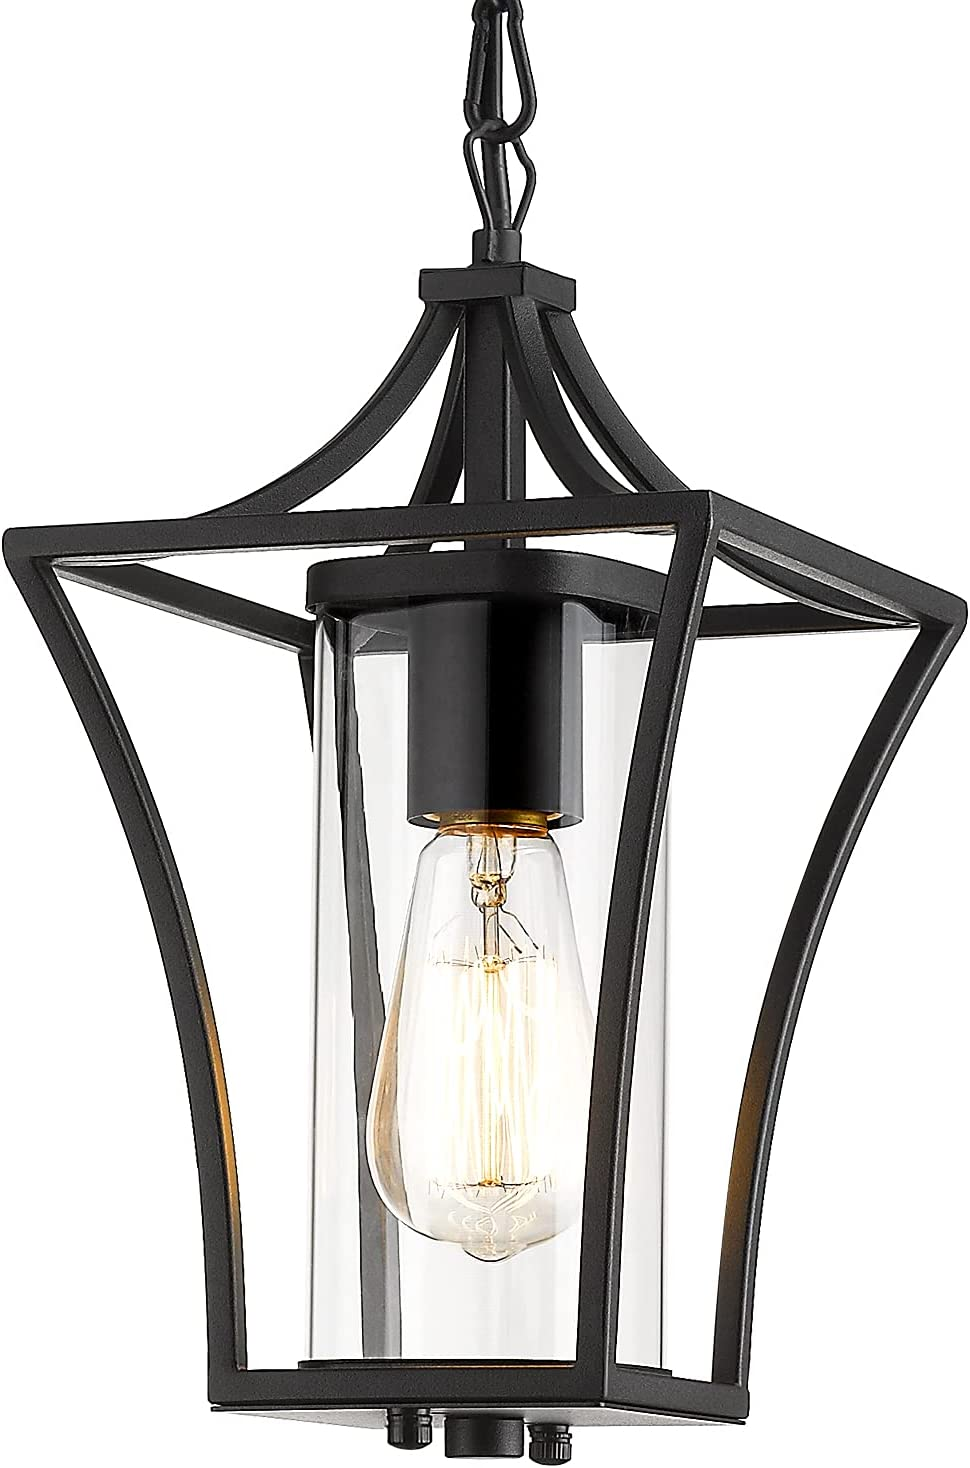 KAUEN Outdoor Pendant Light for Porch Arlington Mall Fix Now free shipping Outside Hanging